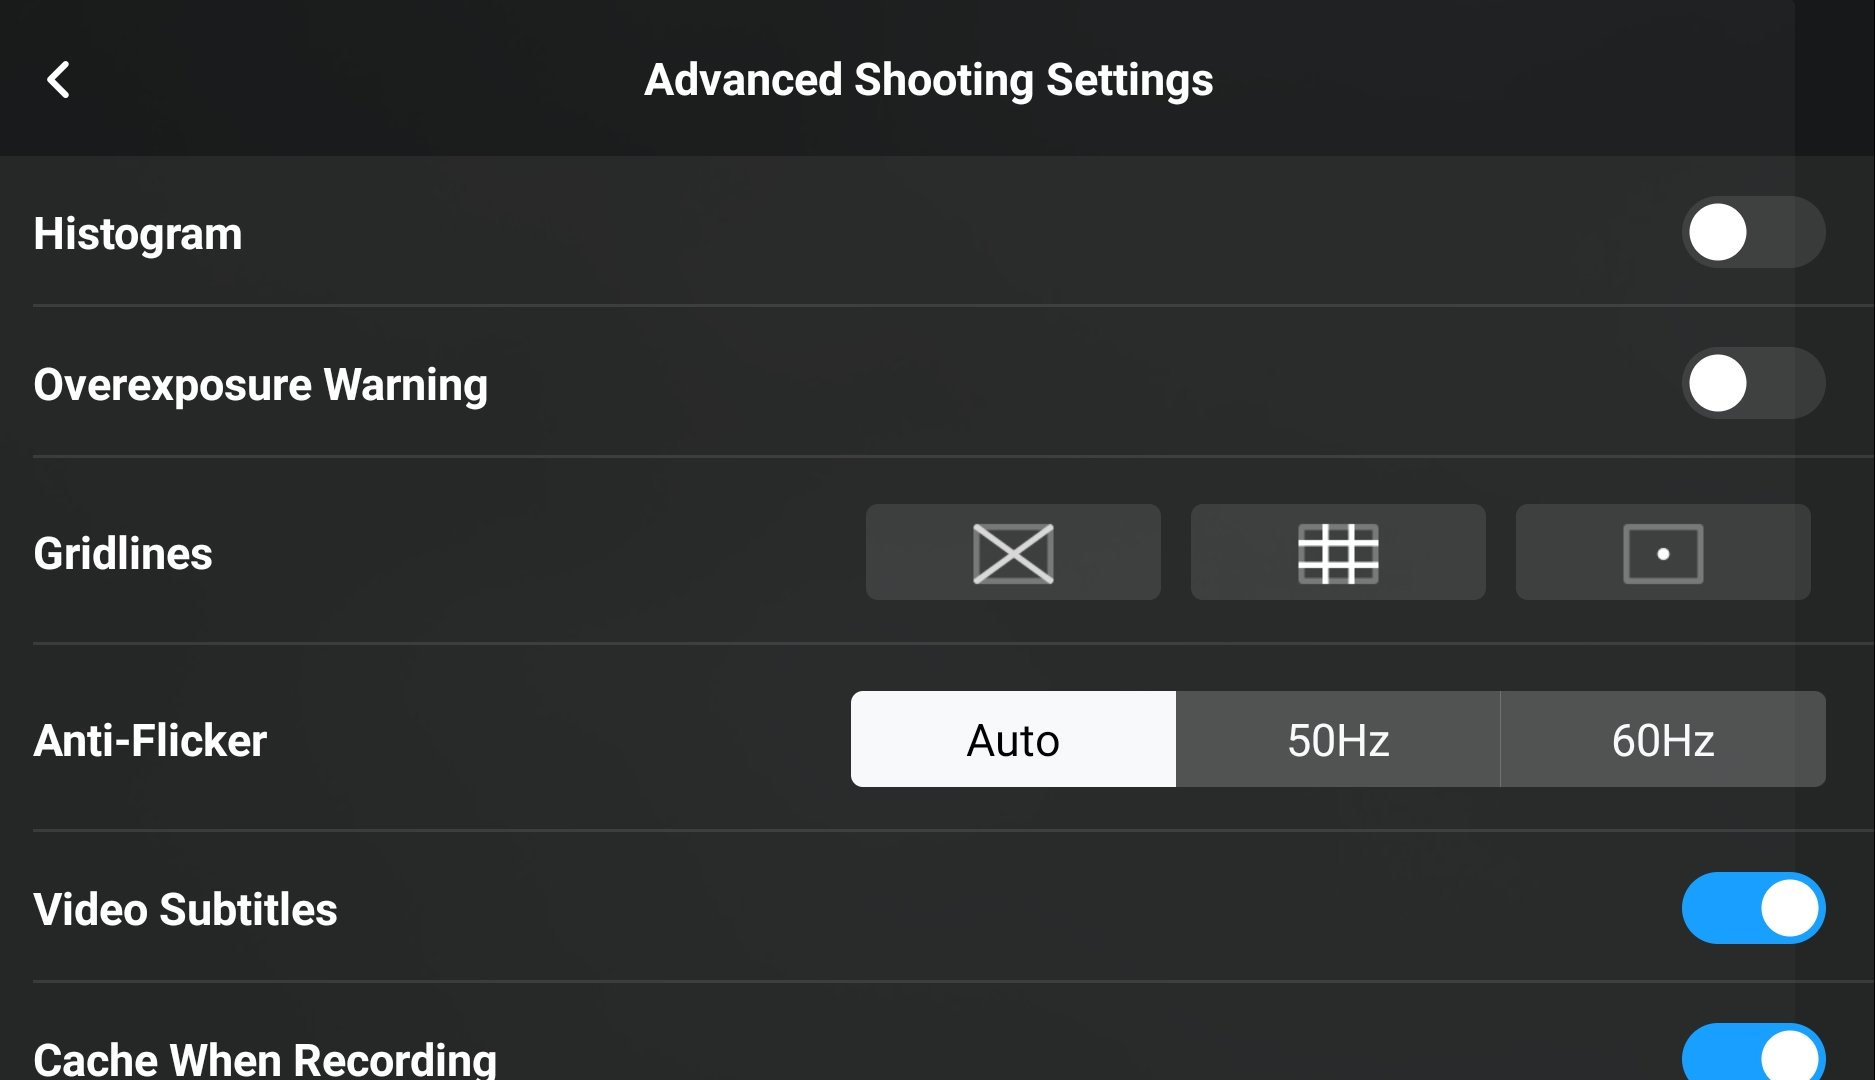 DJI Fly app Advanced Shooting Settings